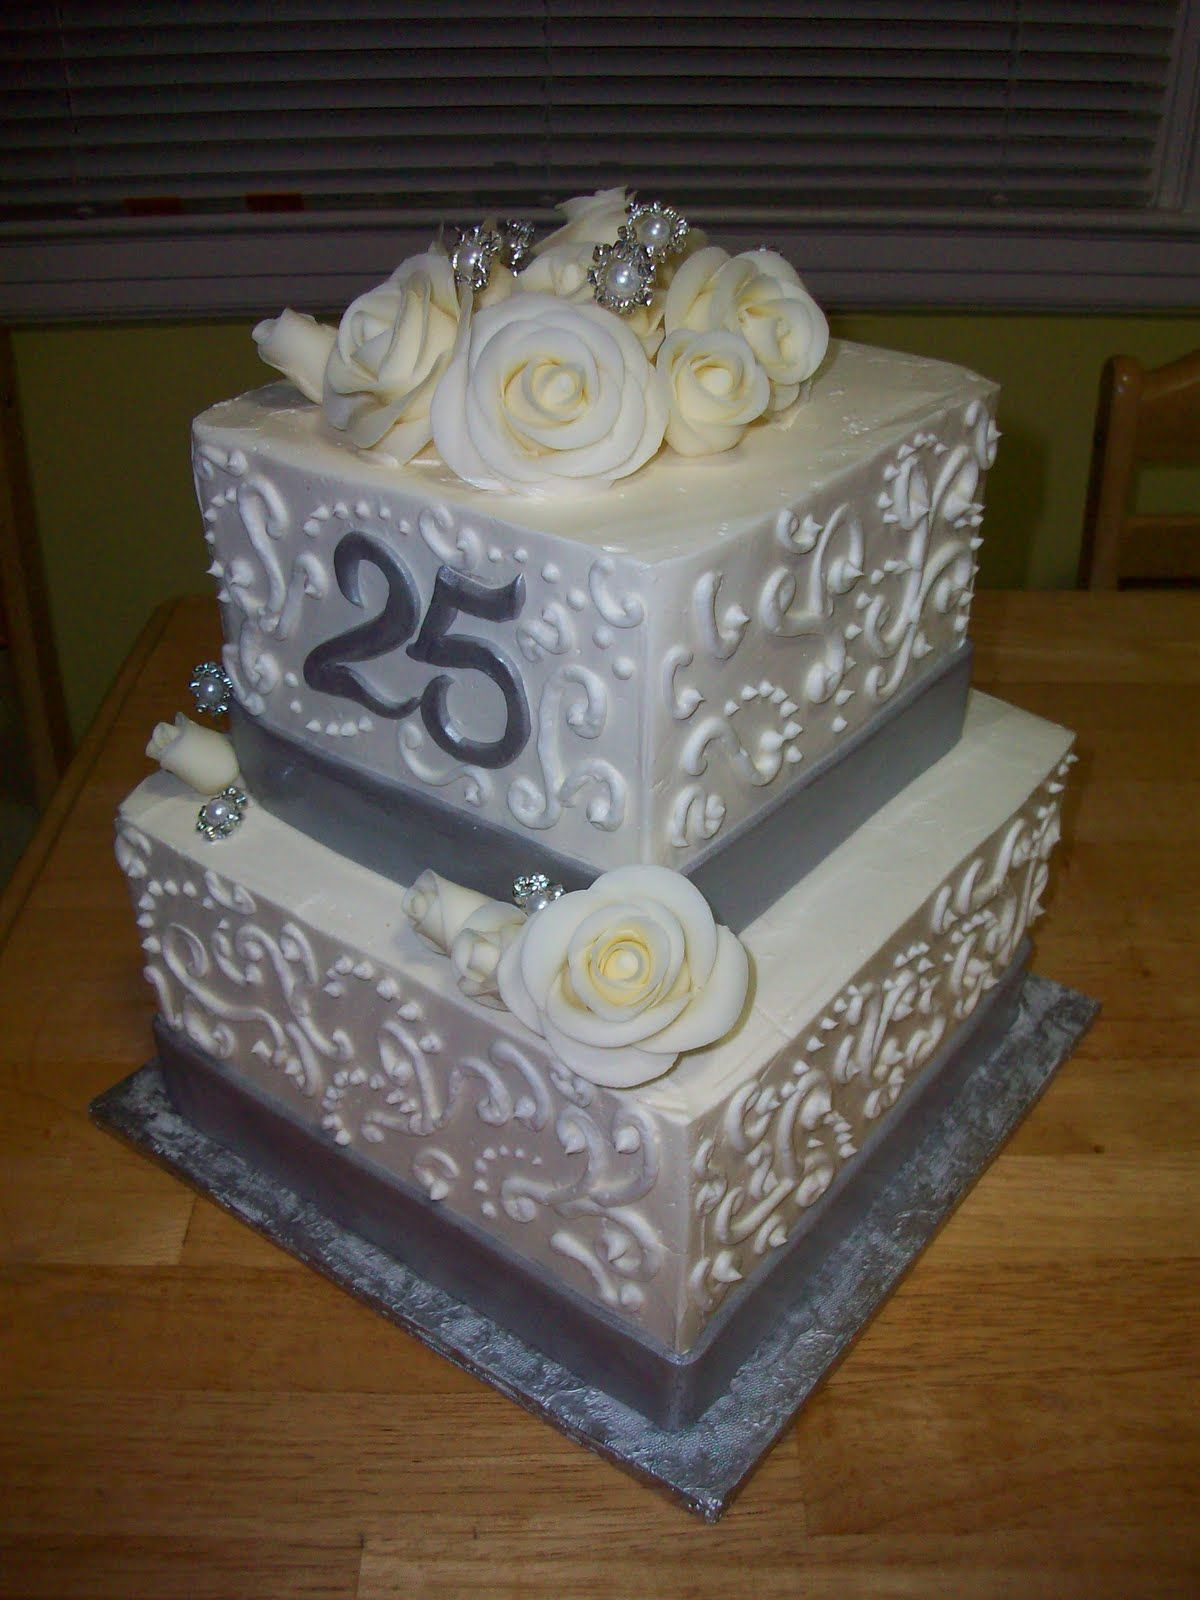 Cake Decorating Wedding Anniversary : 25 anniversary cake - Google Search Cake Ideas ...